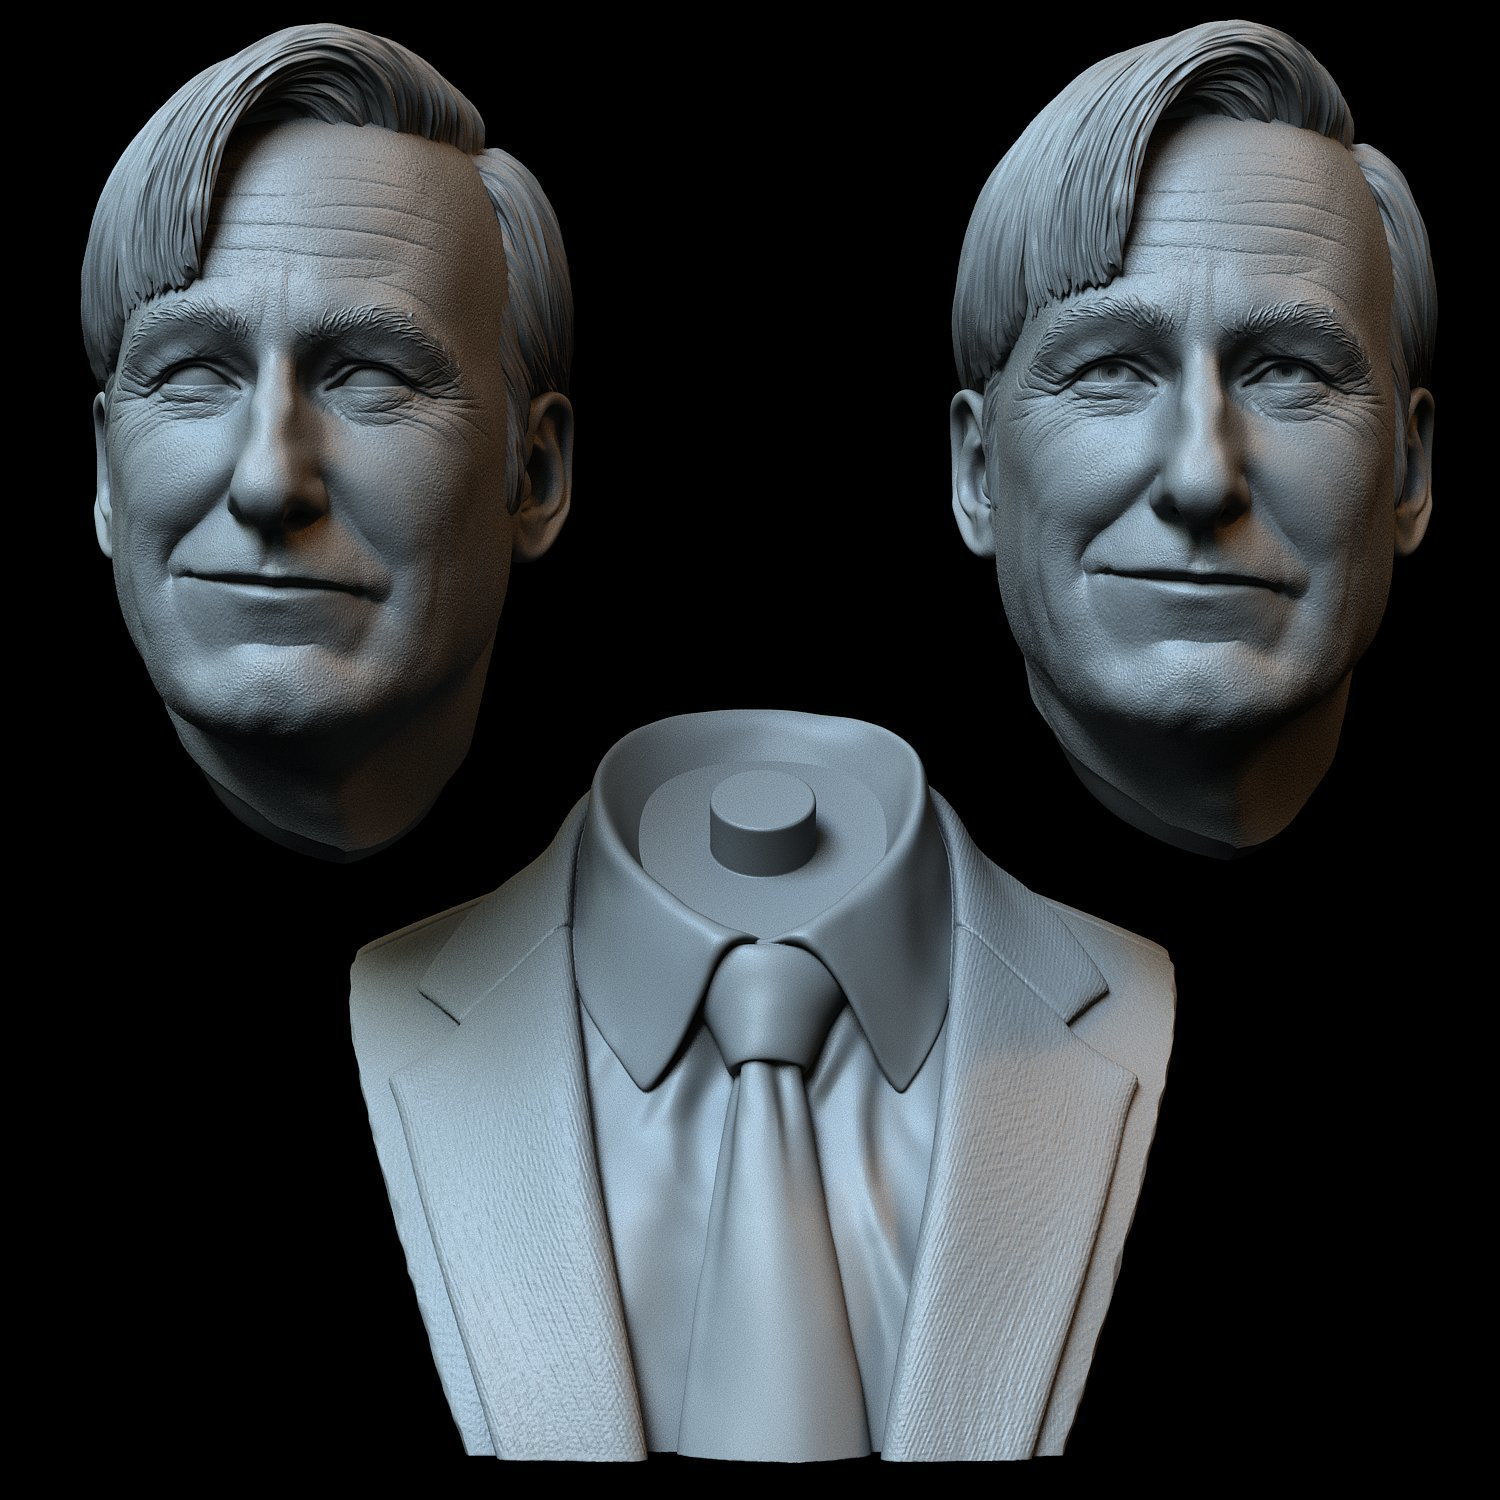 Saul07.jpg Download STL file Saul Goodman aka Jimmy McGill (Bob Odenkirk) from Breaking Bad and Better Call Saul • Model to 3D print, sidnaique